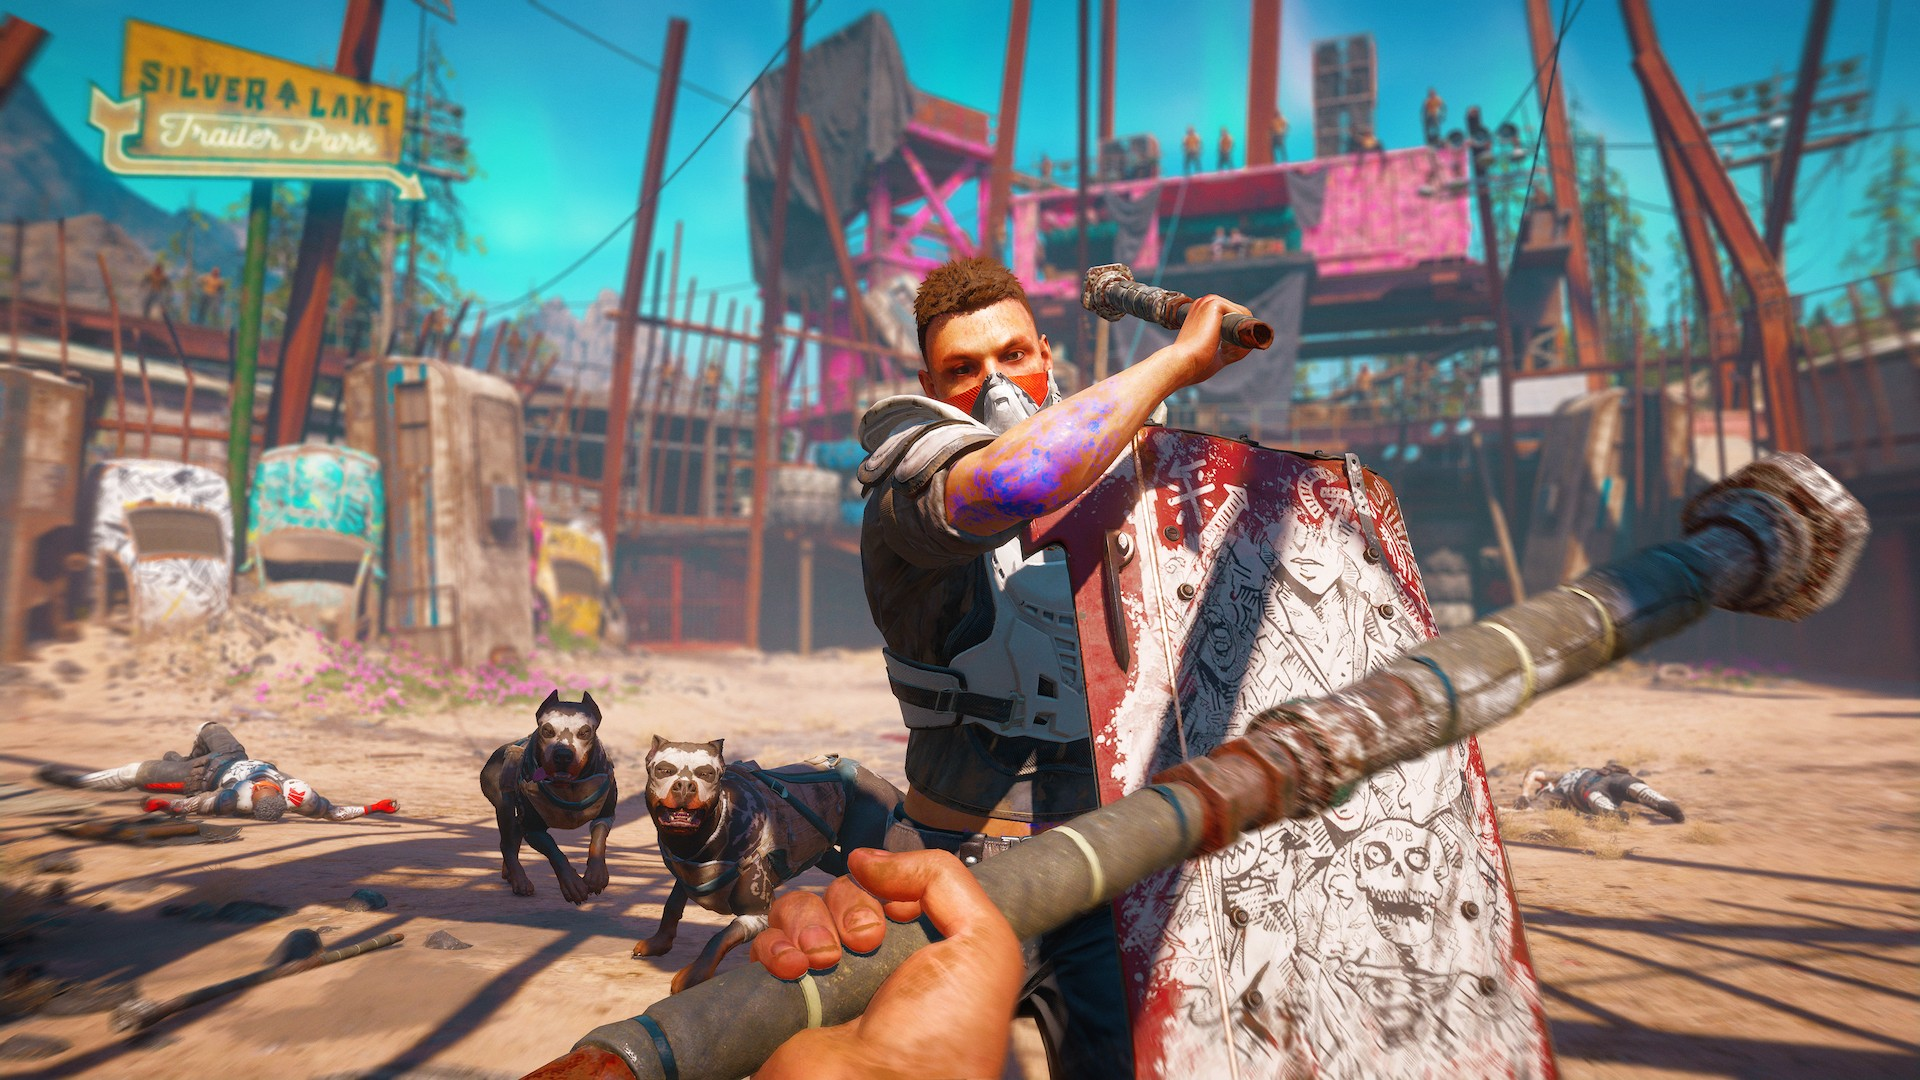 Far Cry New Dawn review: is its violence fun, horrific, or both?